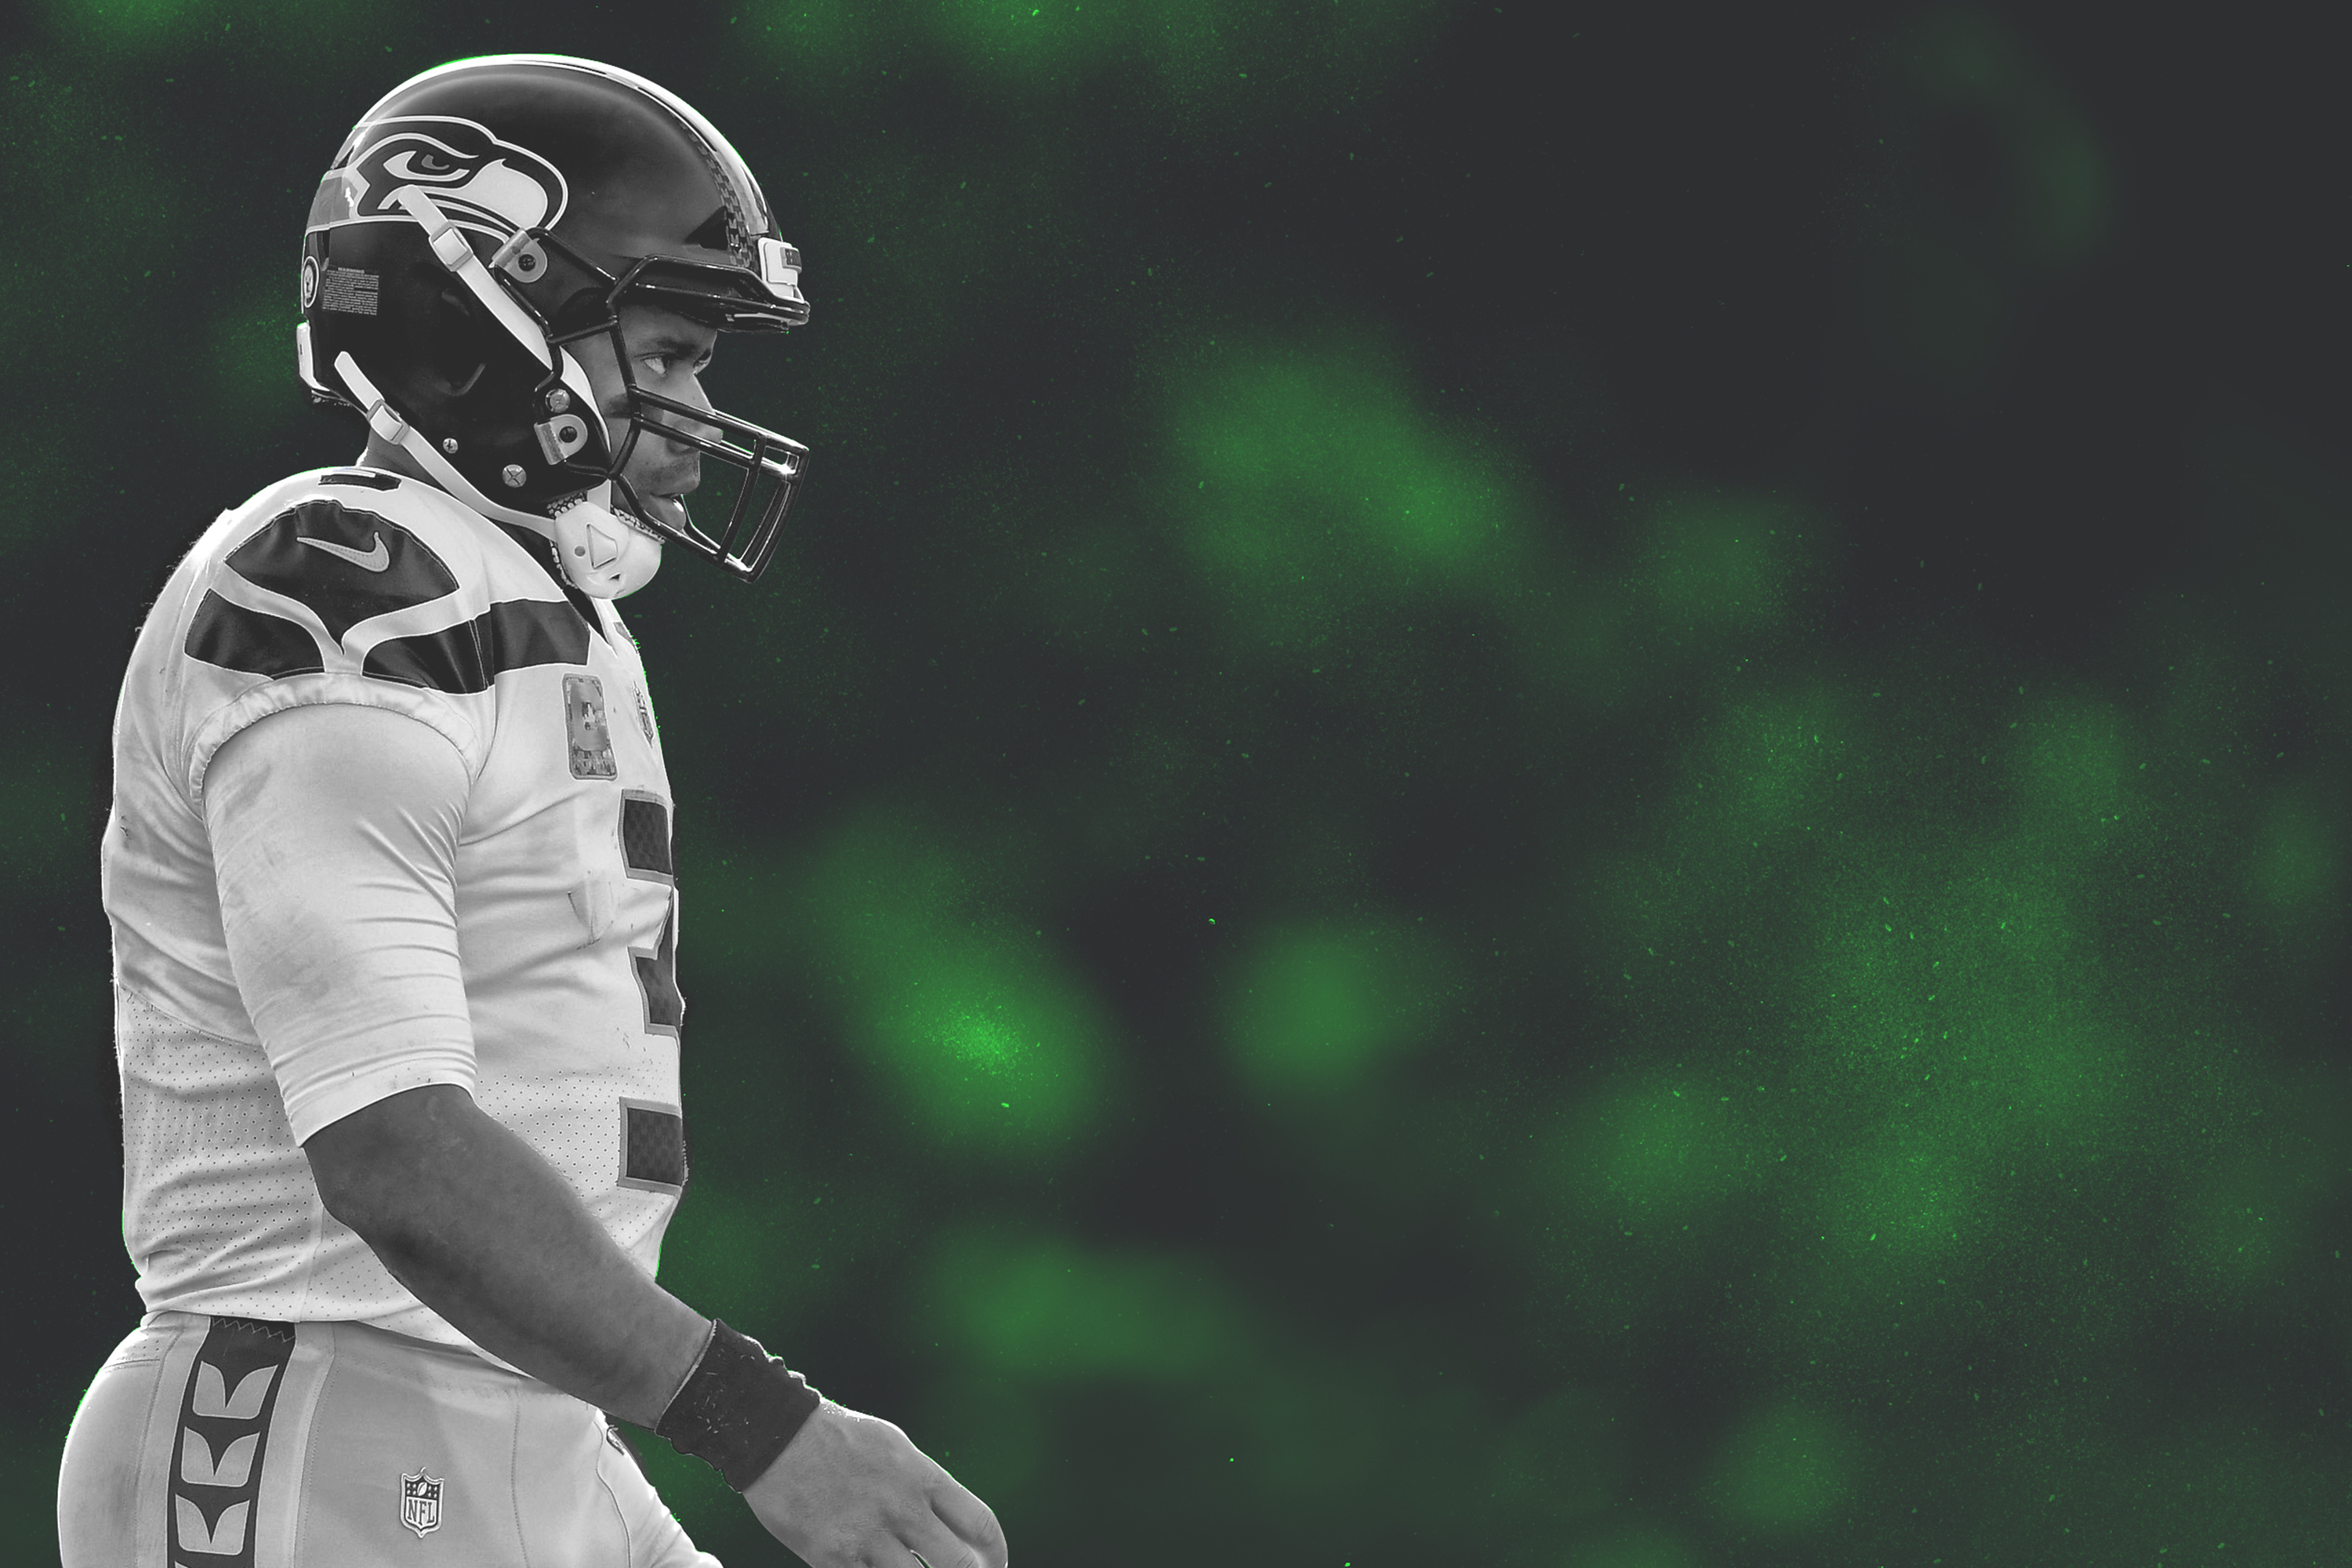 c1bfafa6 I Don't Fear It': The Seahawks Are Russell Wilson's Team, but Is He ...